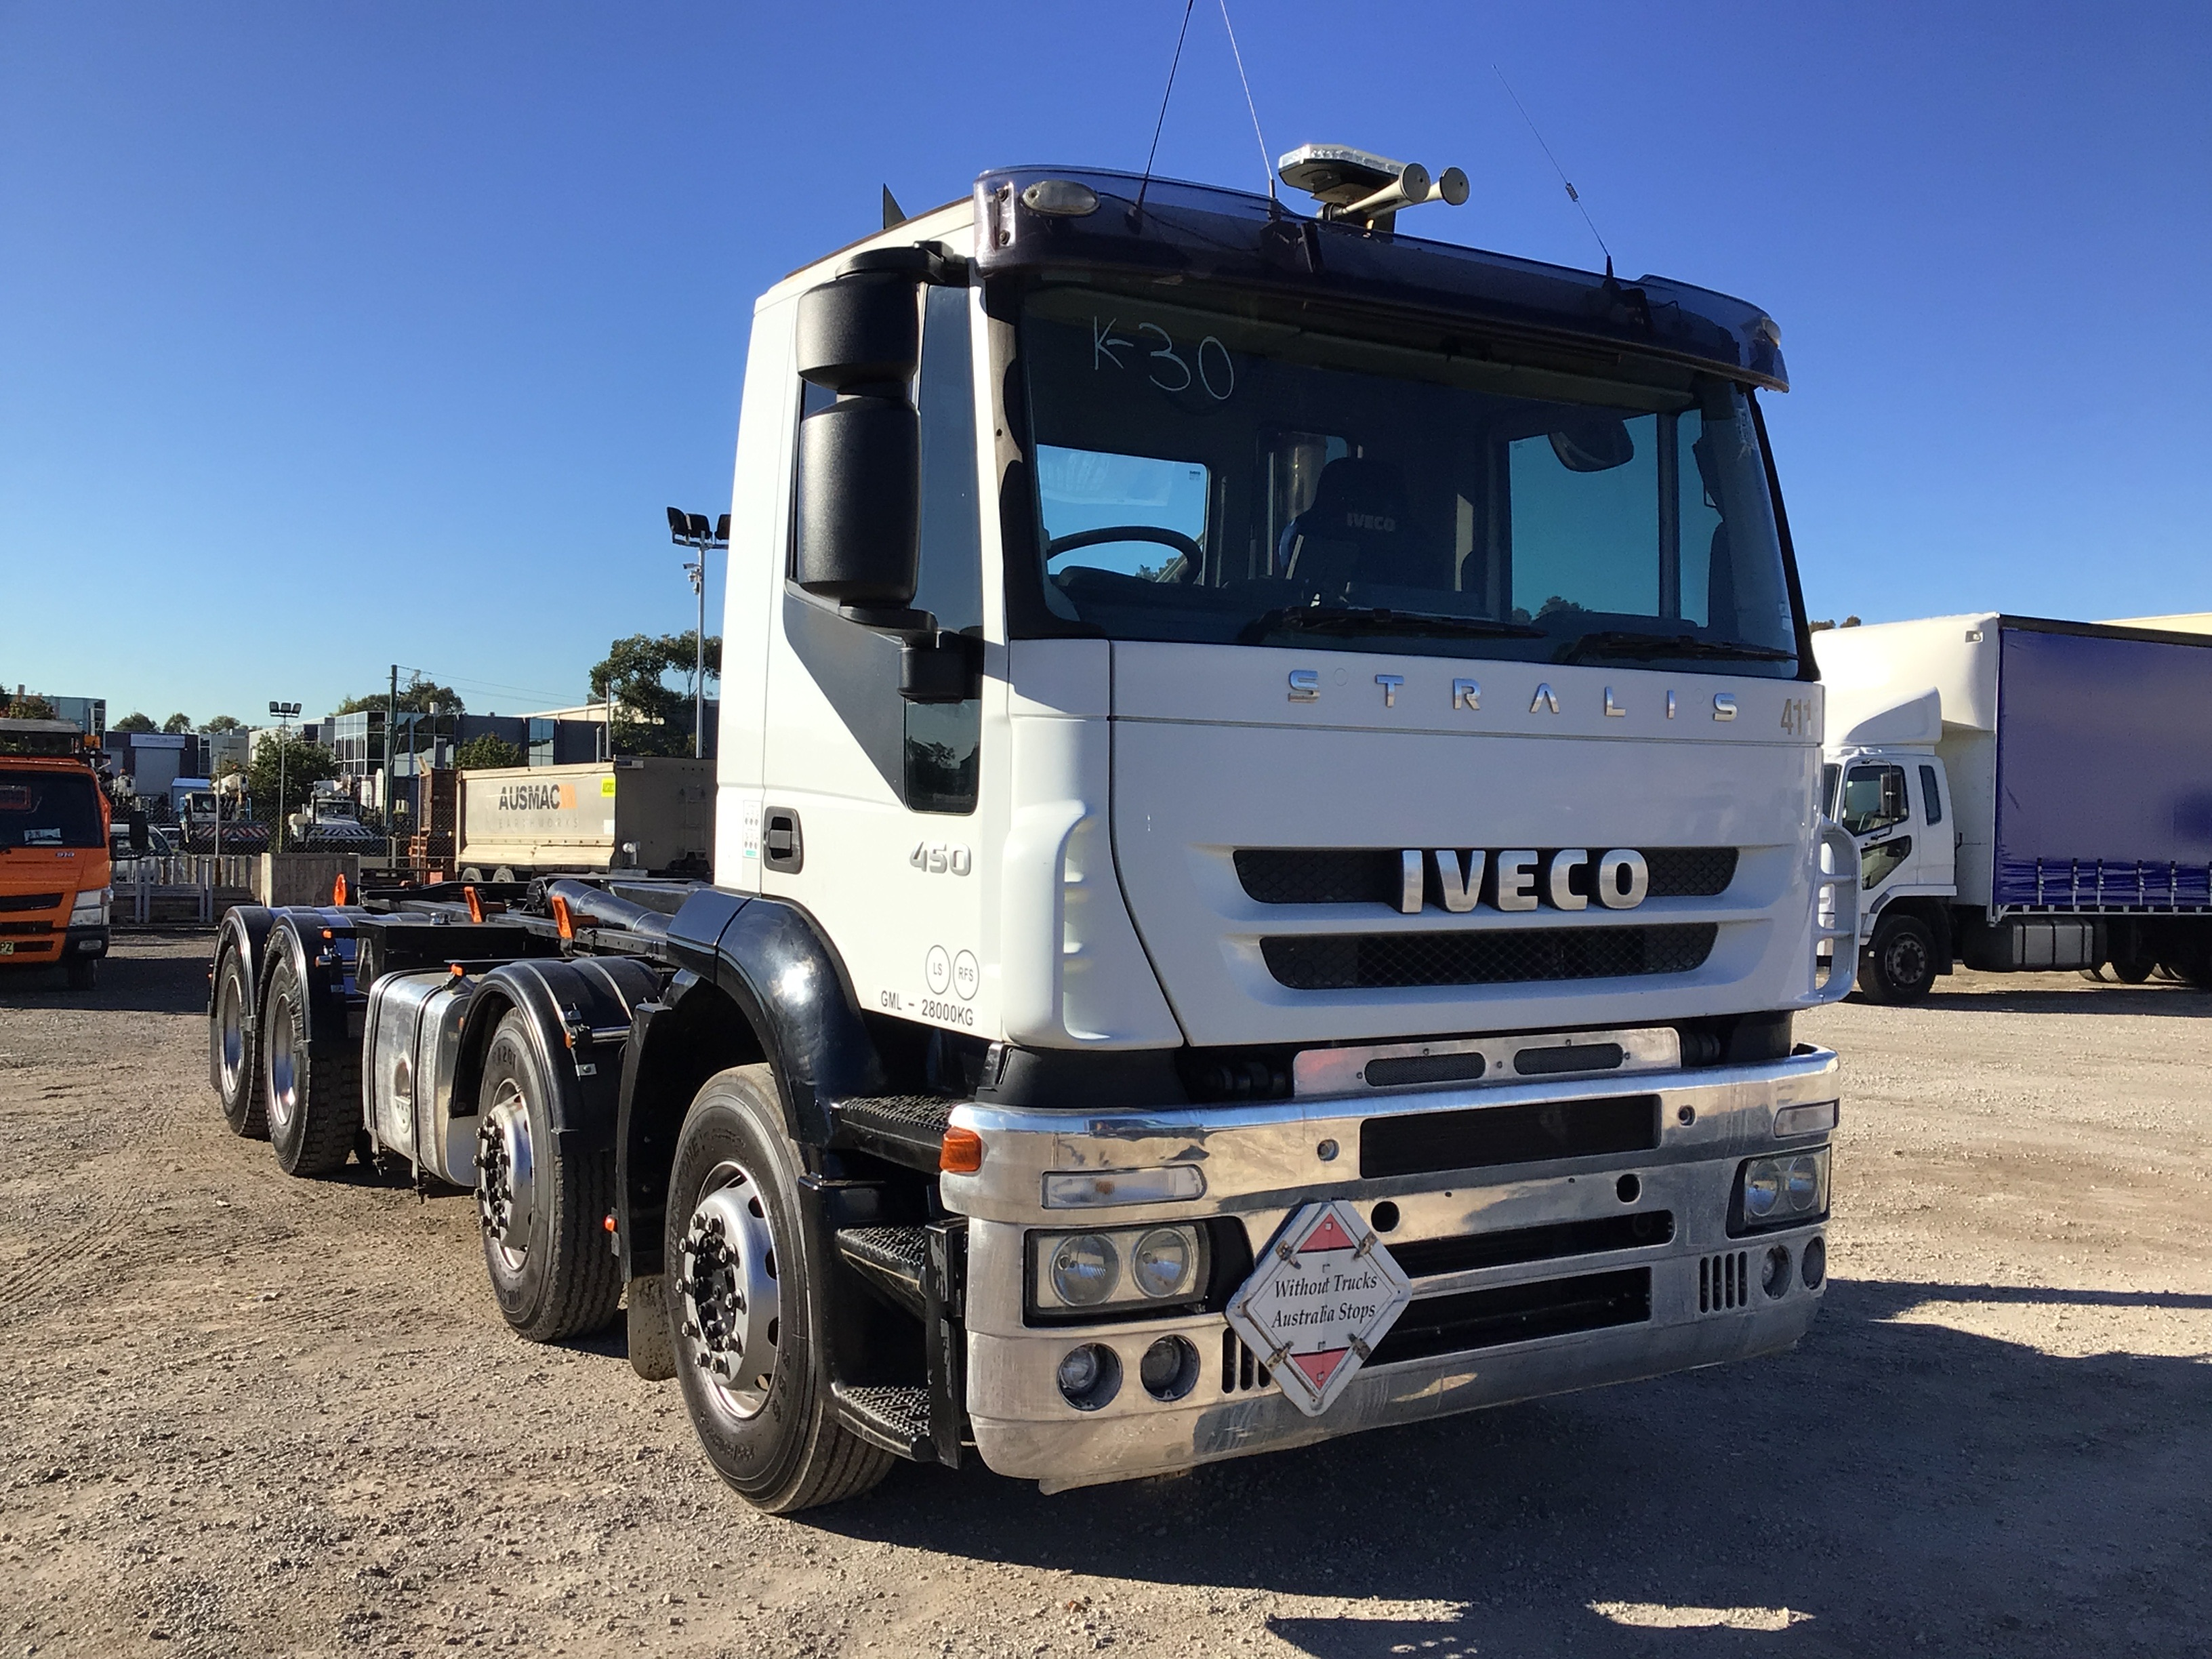 2012 Iveco Stralis 450 8 x 4 Hooklift Truck